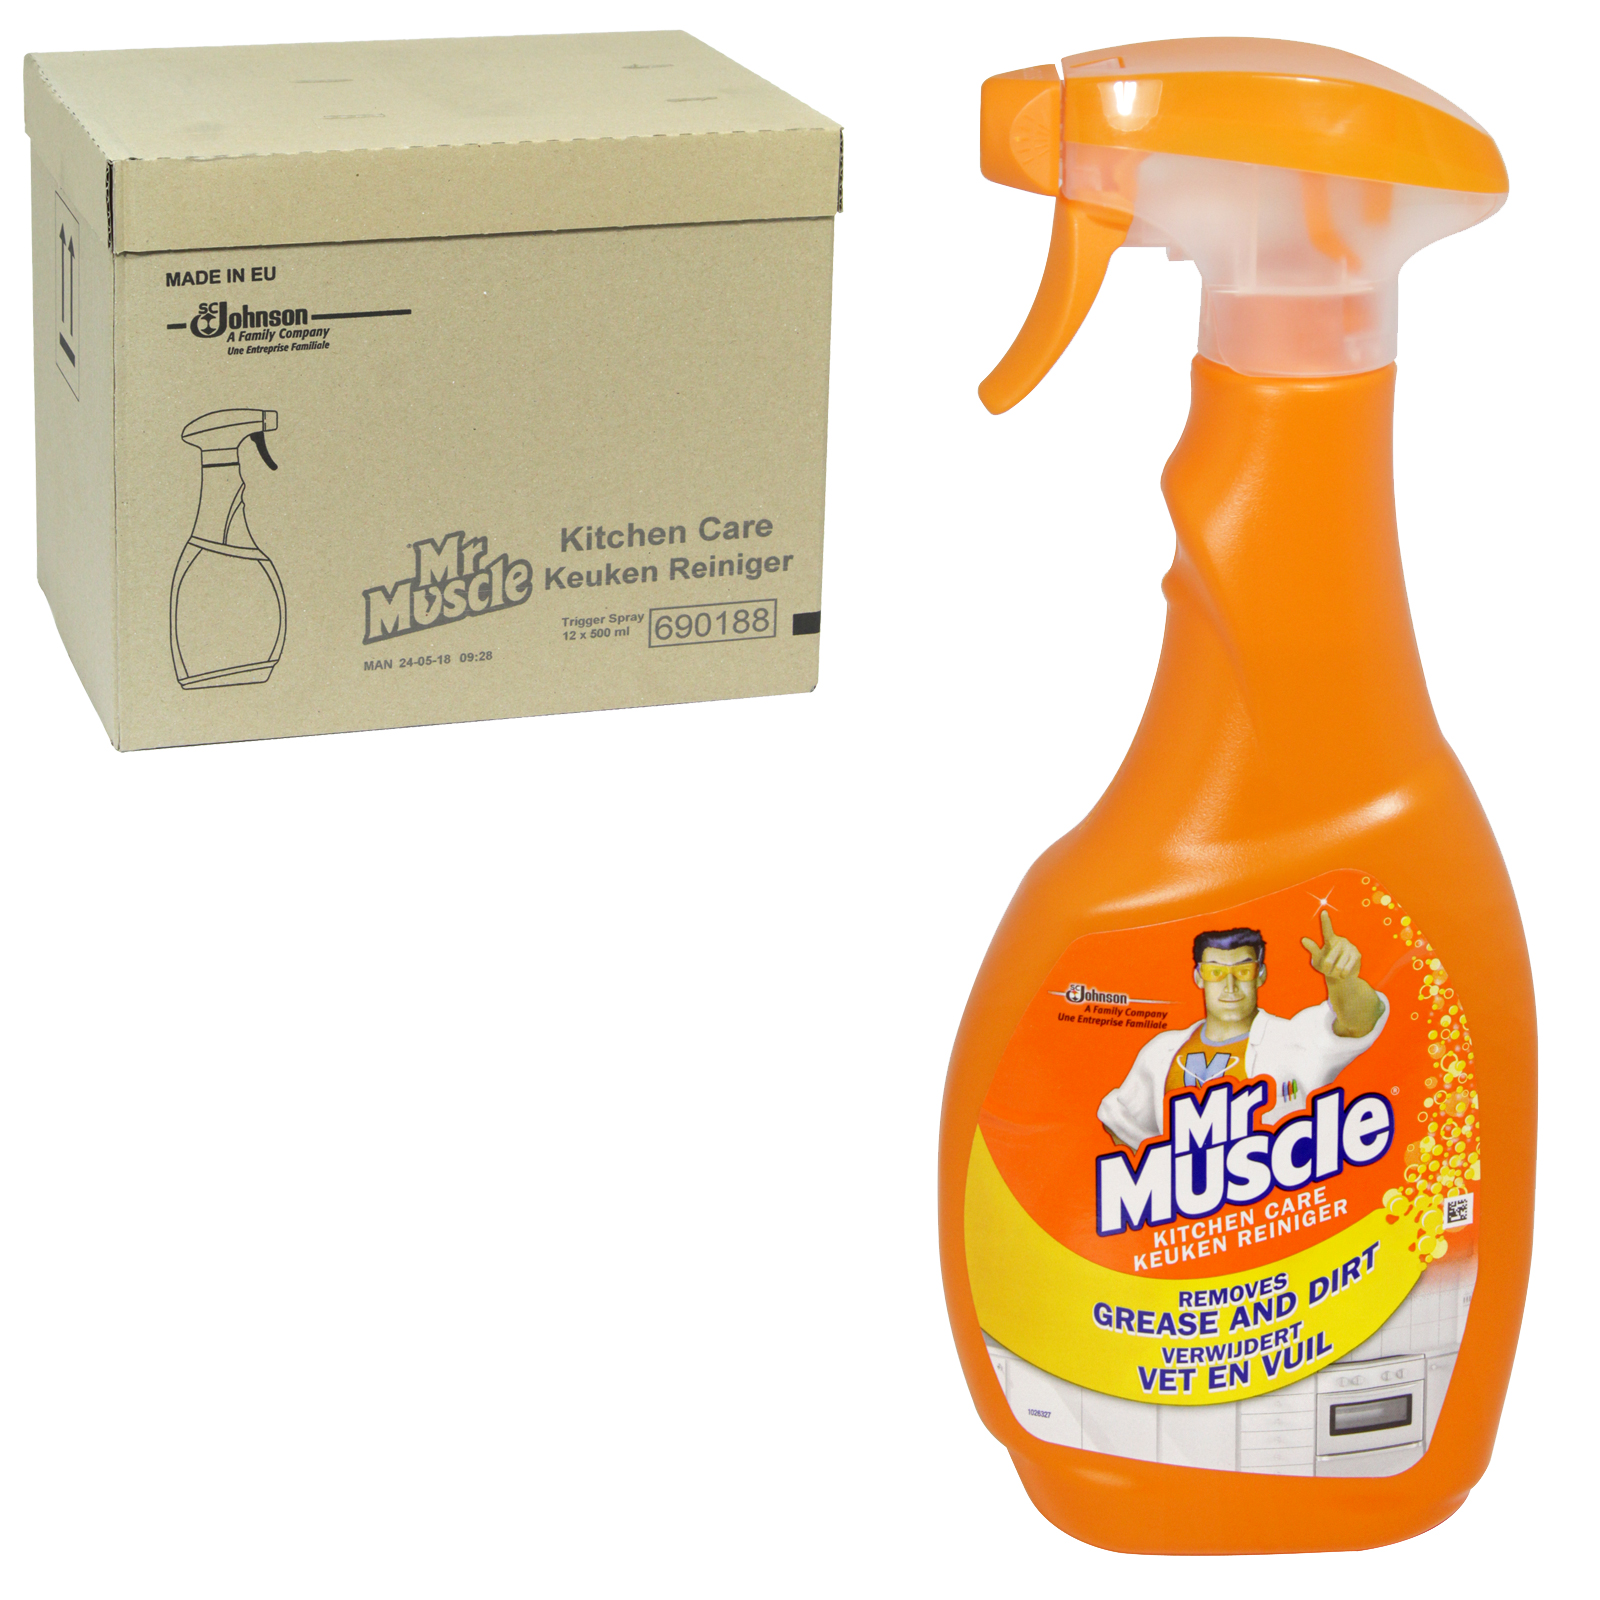 MR MUSCLE 500ML KITCHEN CARE X12